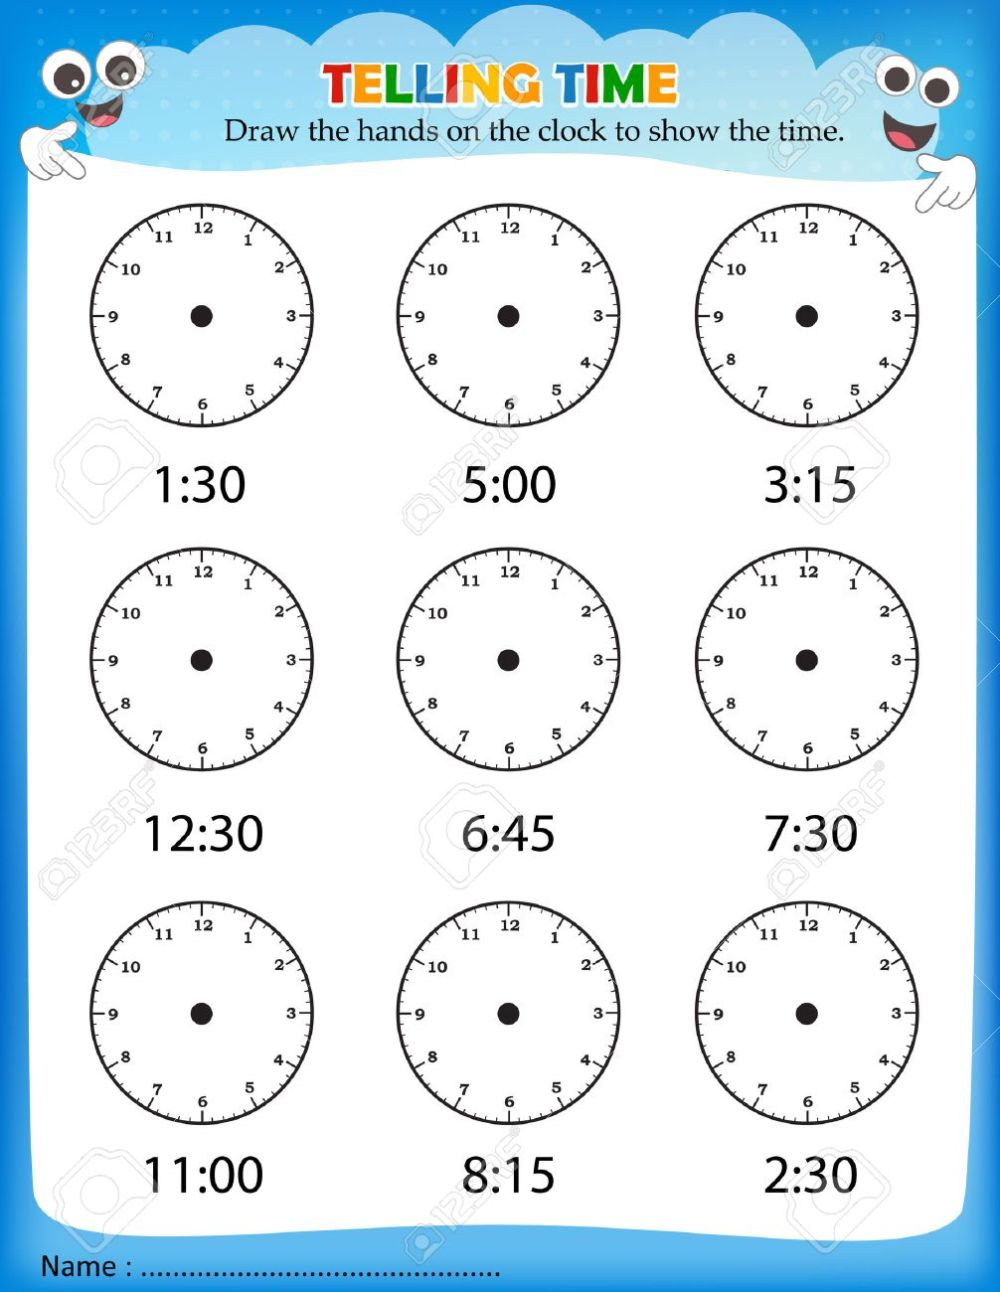 medium resolution of Telling Time Worksheet For Pre School Kids To Identify The Time... Royalty  Free Cliparts